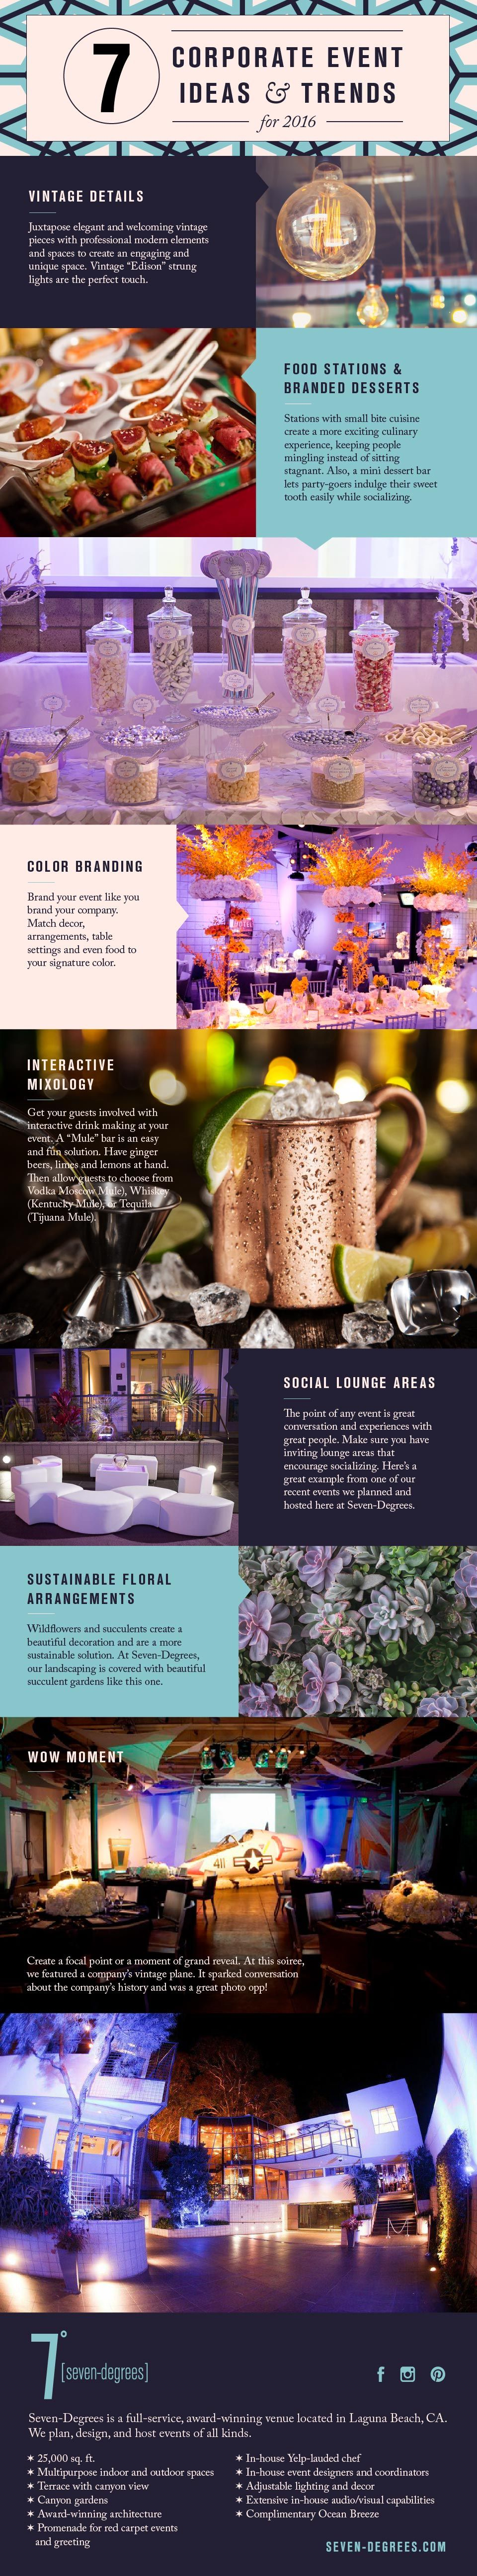 We gathered the top 7 Corporate Event Trends and Ideas for 2016 on our latest blog! Seven-Degrees is a full-service, award-winning event venue and even planning company in Laguna Beach, CA.